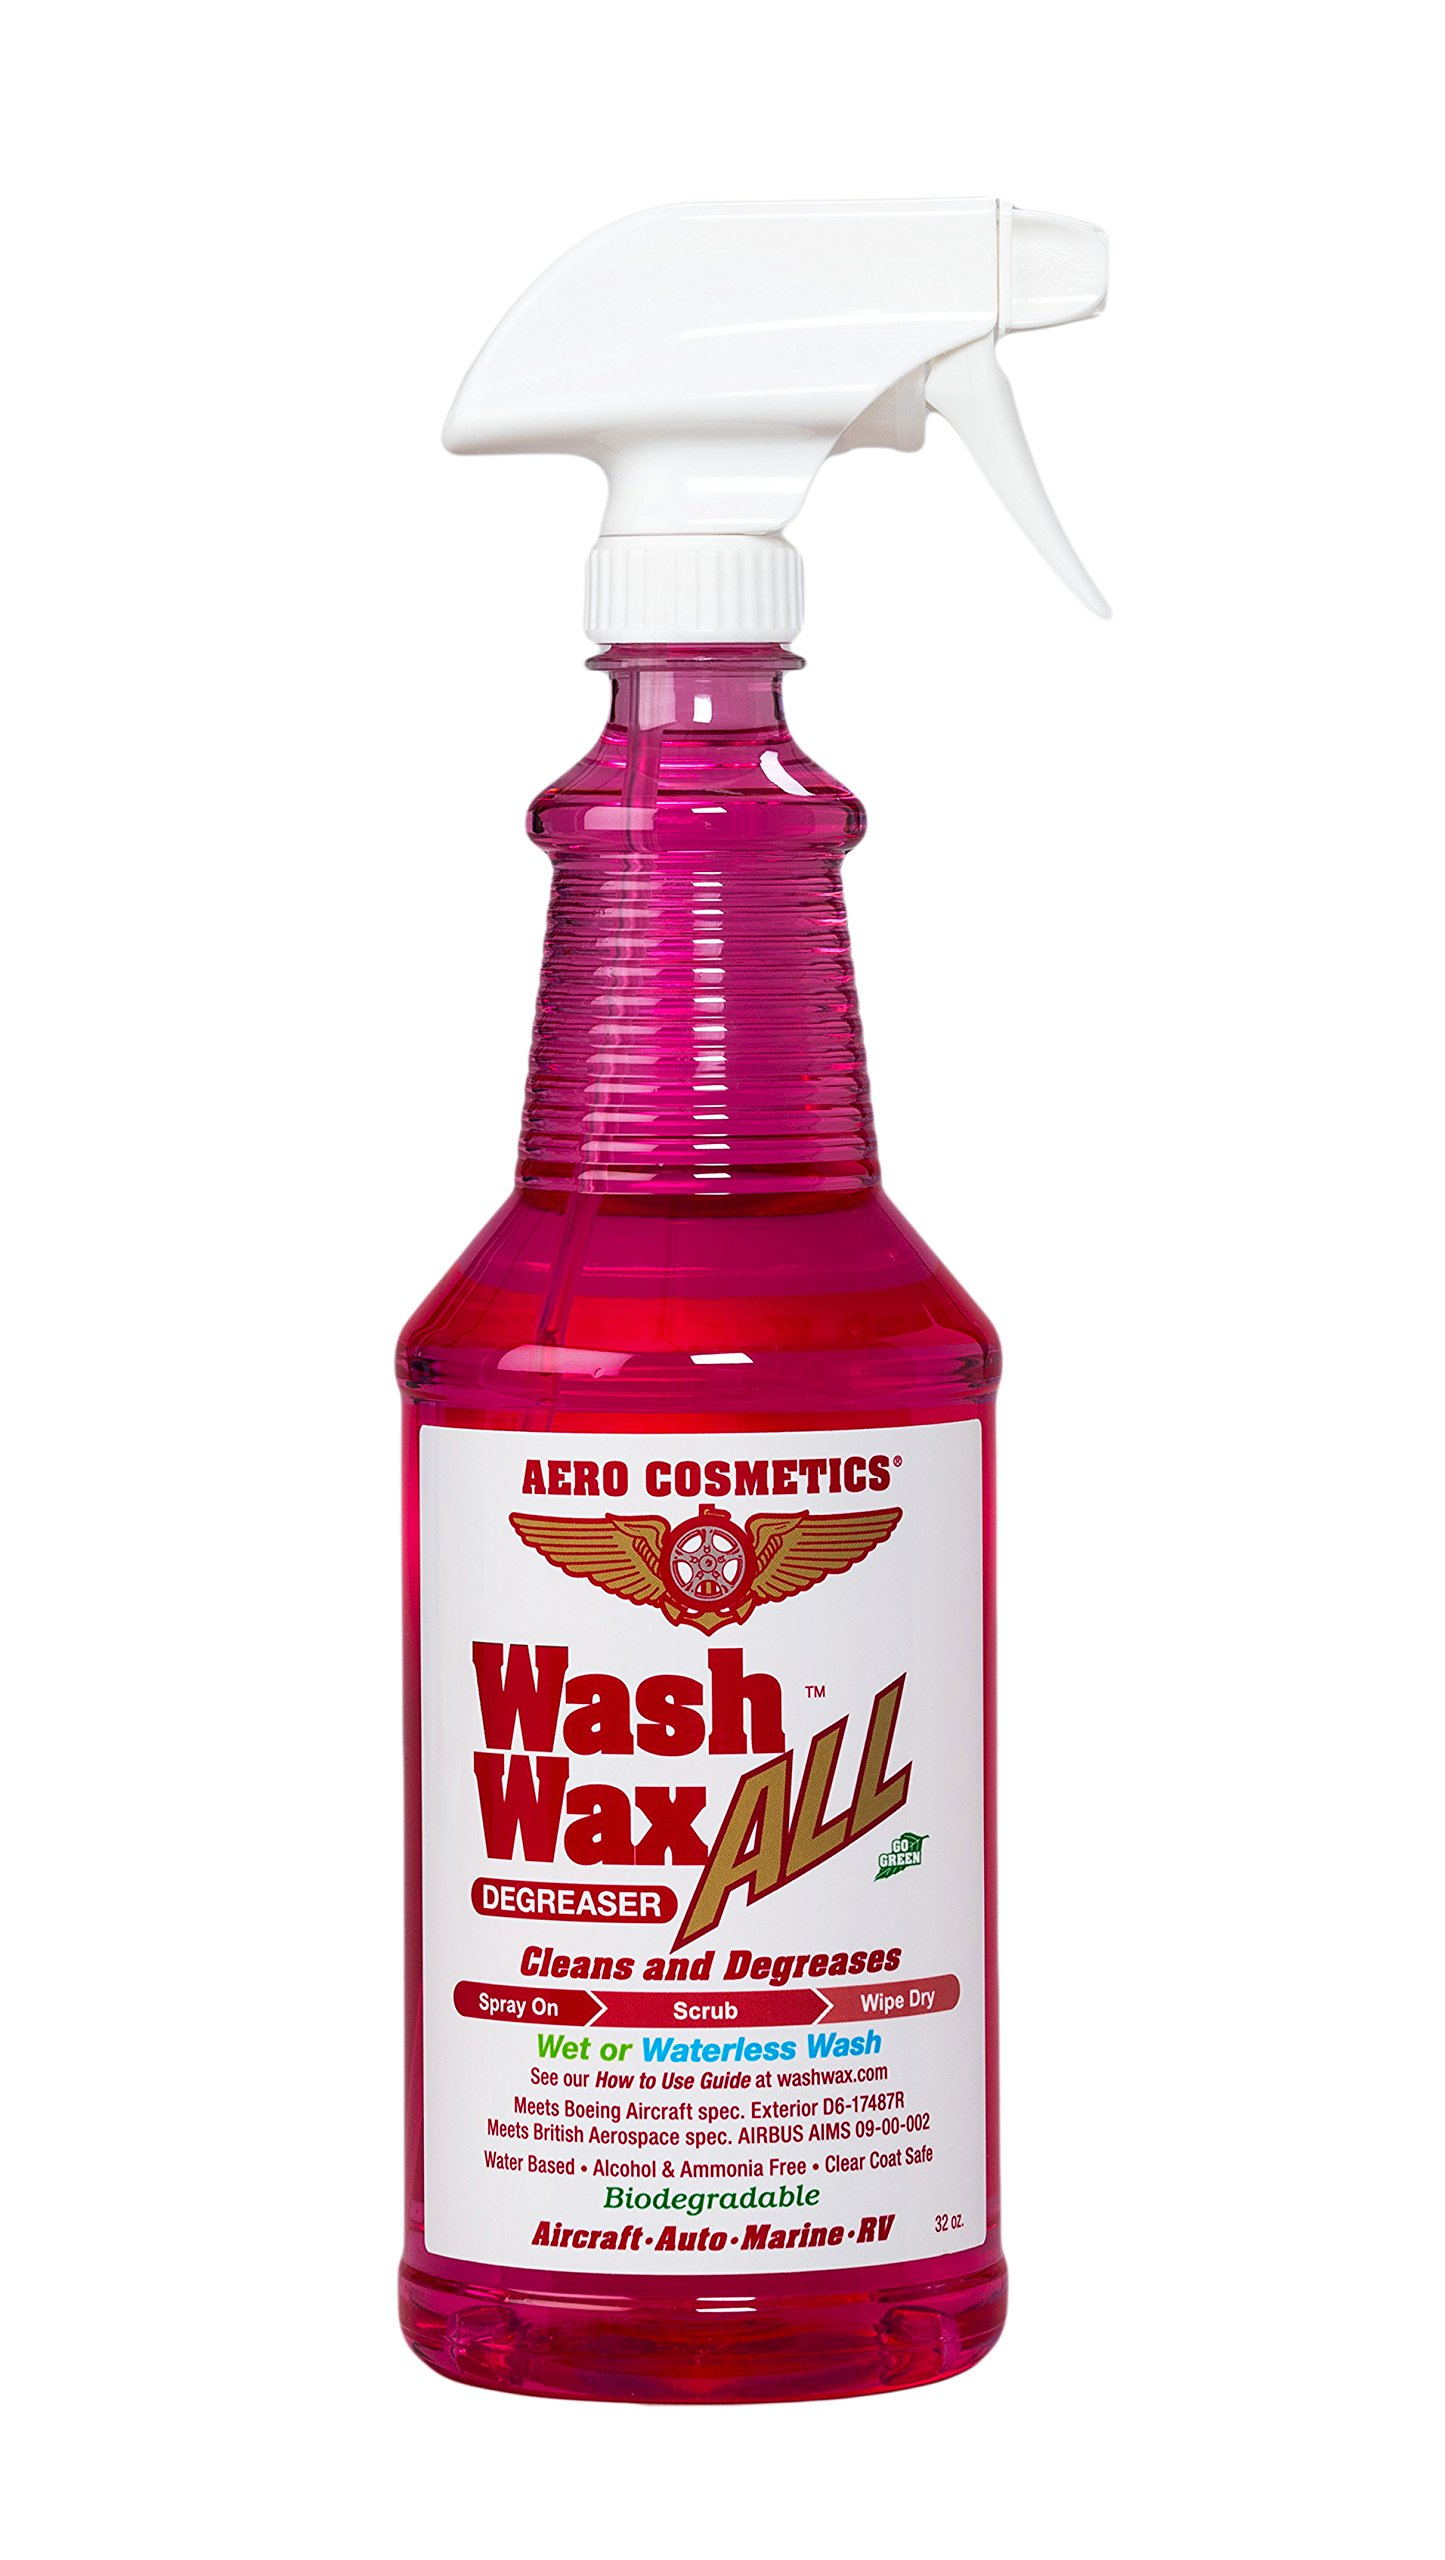 Aero Cosmetics Wash Wax ALL Degreaser, Wet or Waterless Cleaner Degreaser, Wheel, Tire, Engine Cleaner, Black Streak & Aircraft Exhaust Soot Remover, The Best for your Car, RV, Boat & Motorcycle 32oz